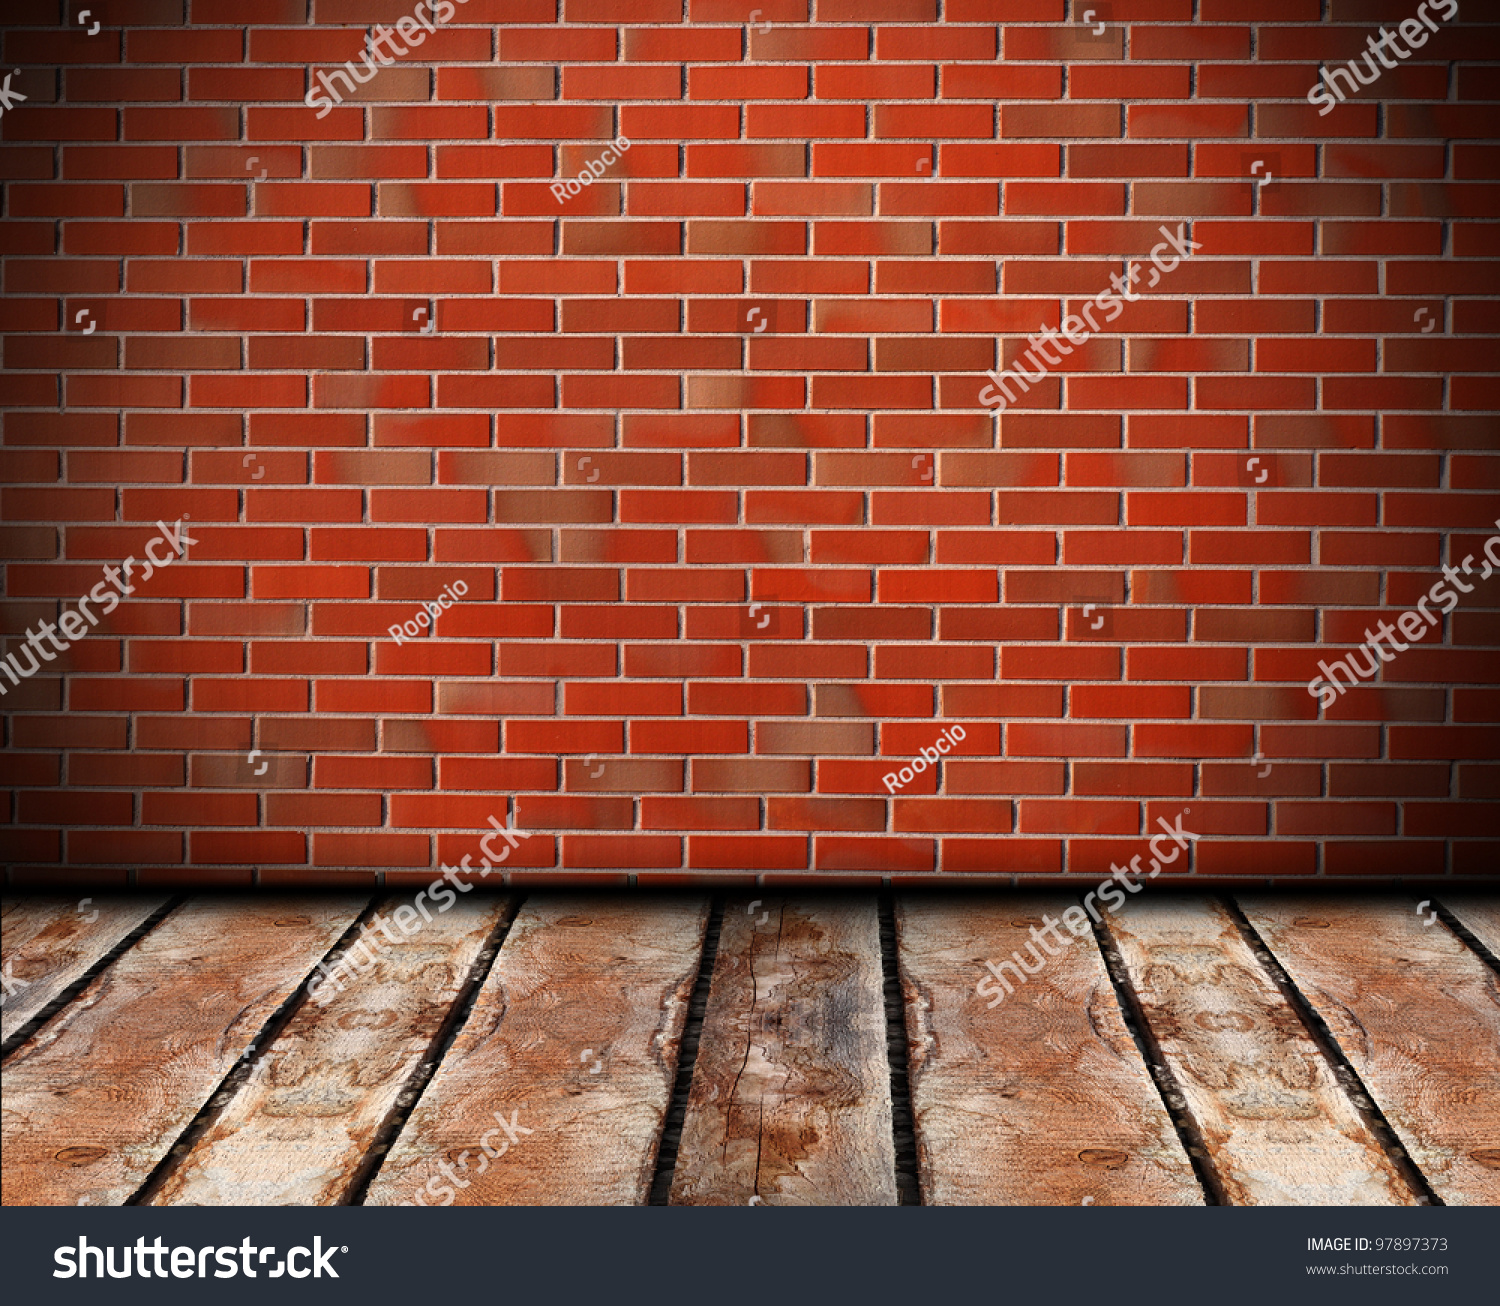 Problems With Brick Floors : Brick walls and wooden floors stock photo